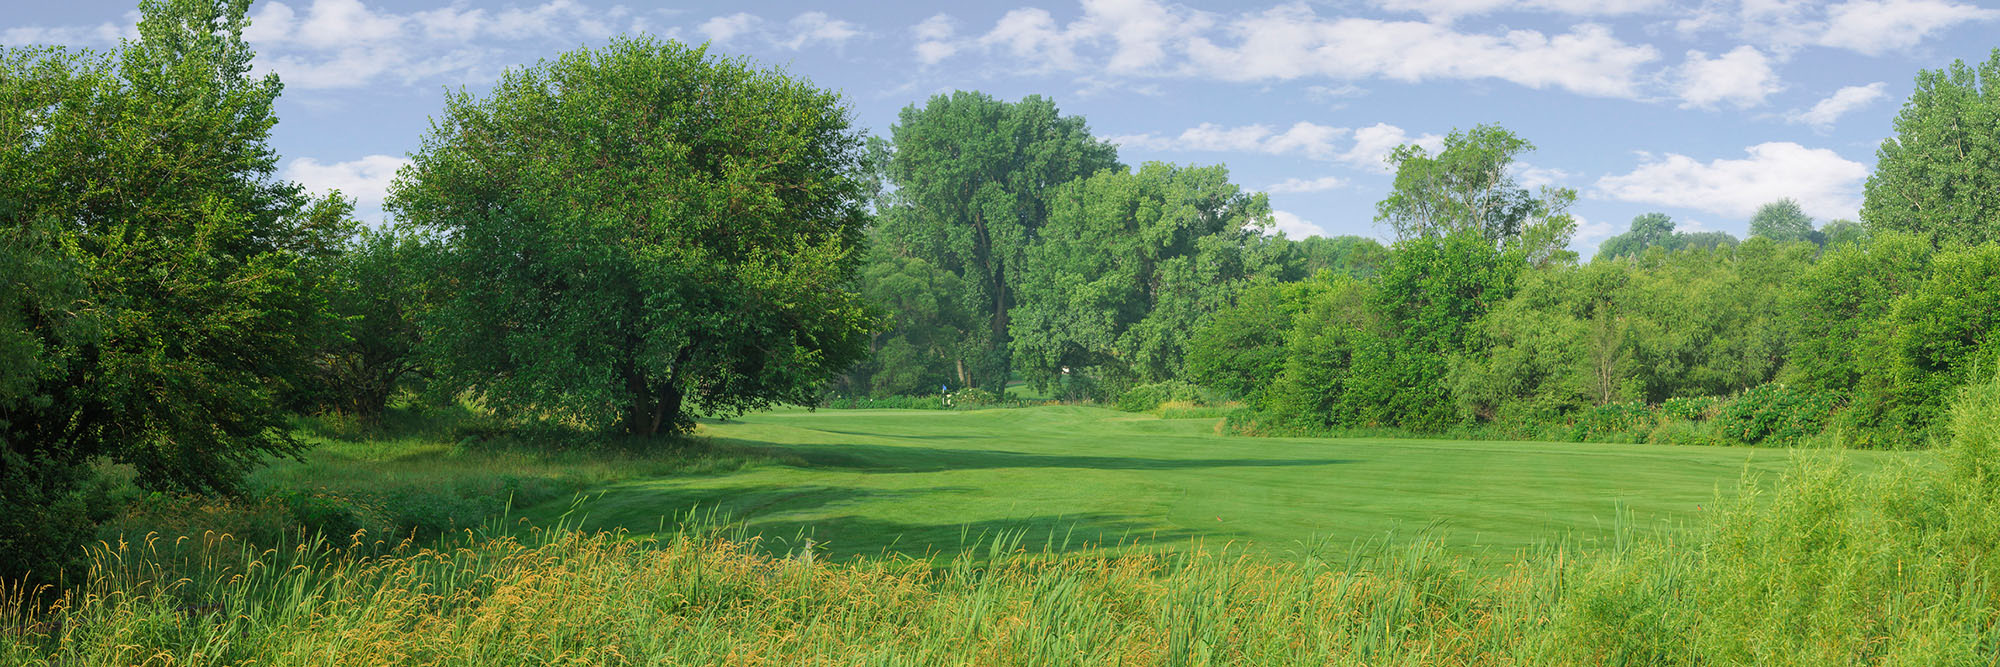 Golf Course Image - Pacific Springs No. 4